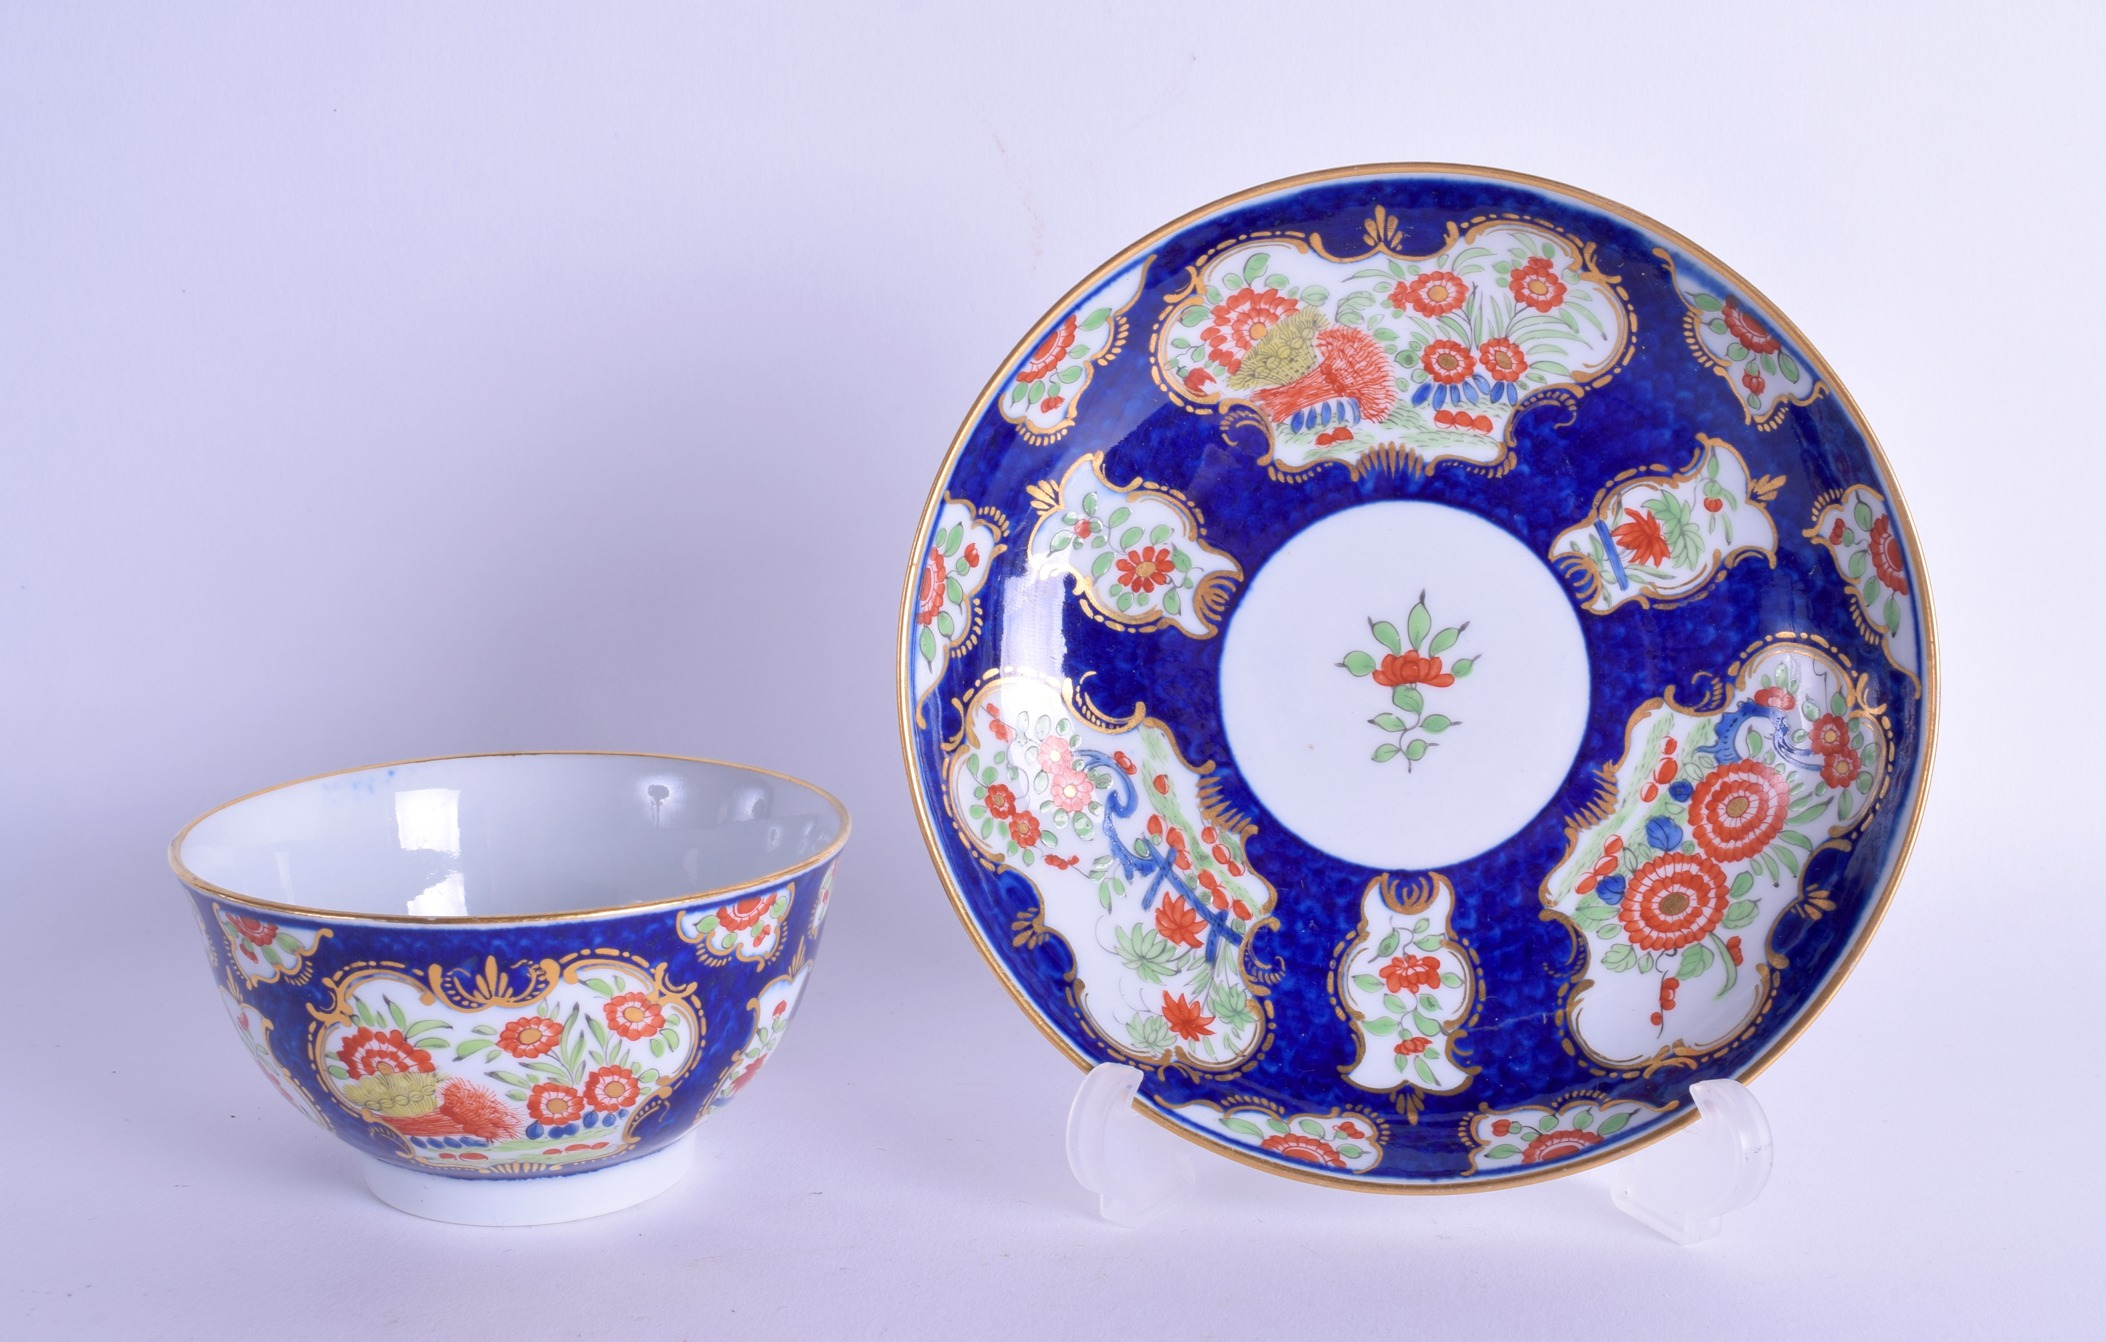 Lot 143 - Late 18th c. Barr Worcester teabowl and saucer of generous size painted with kakiemon style